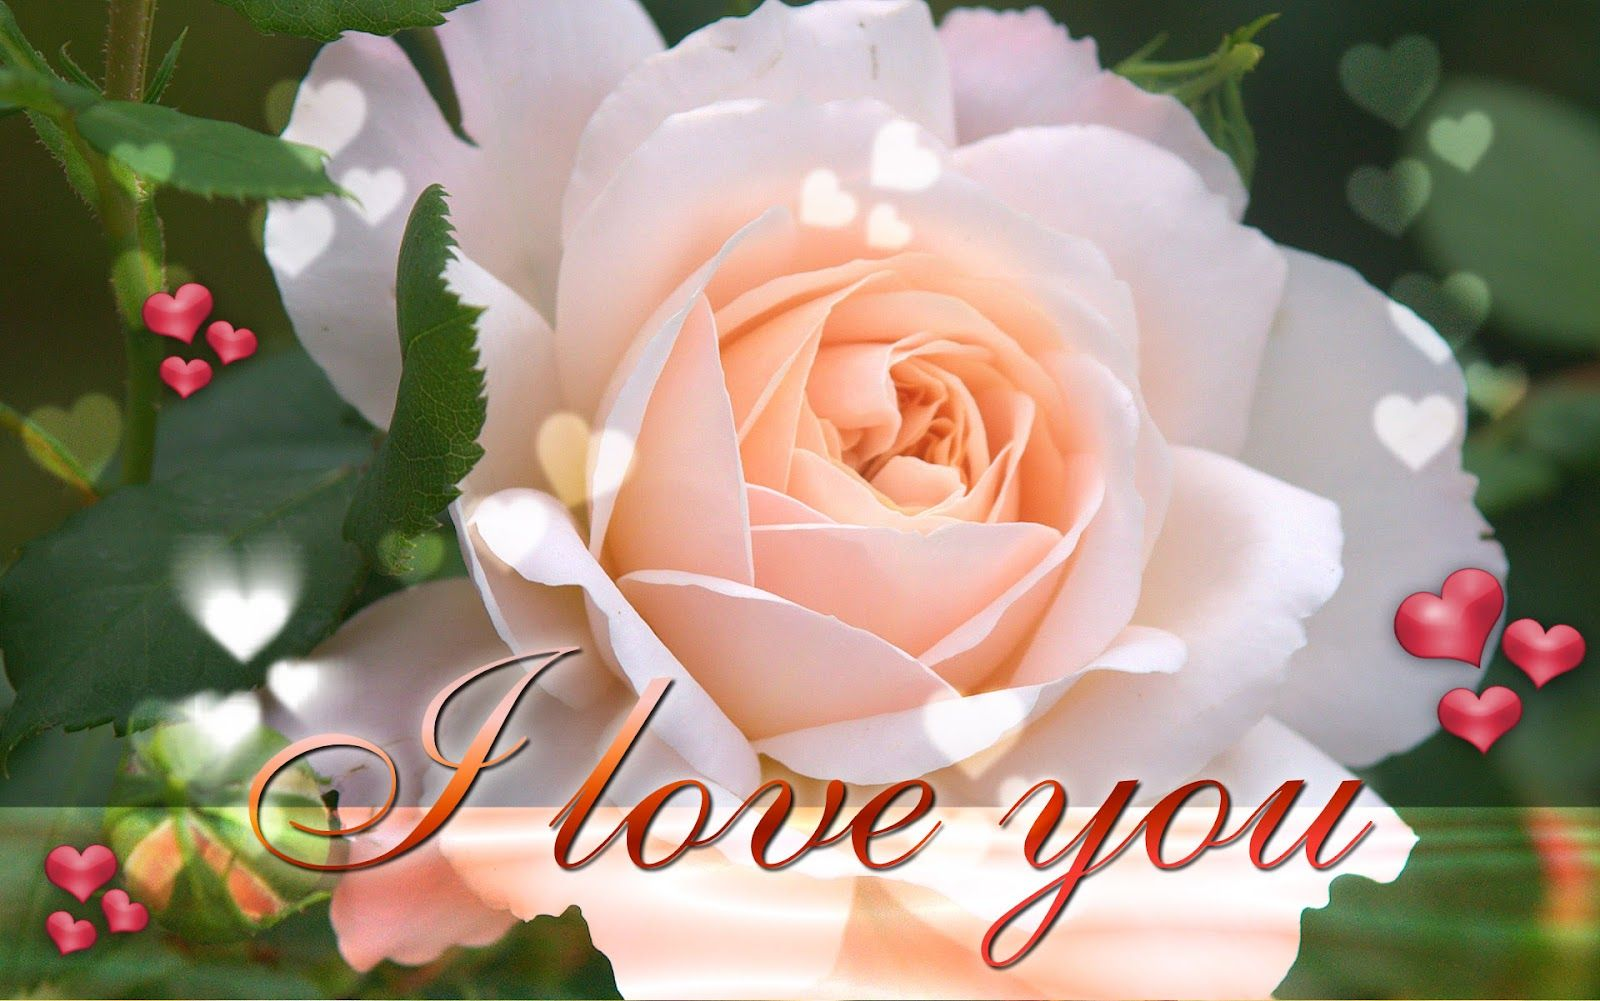 Funny Pictures Gallery: Love roses wallpapers, love rose flower ...